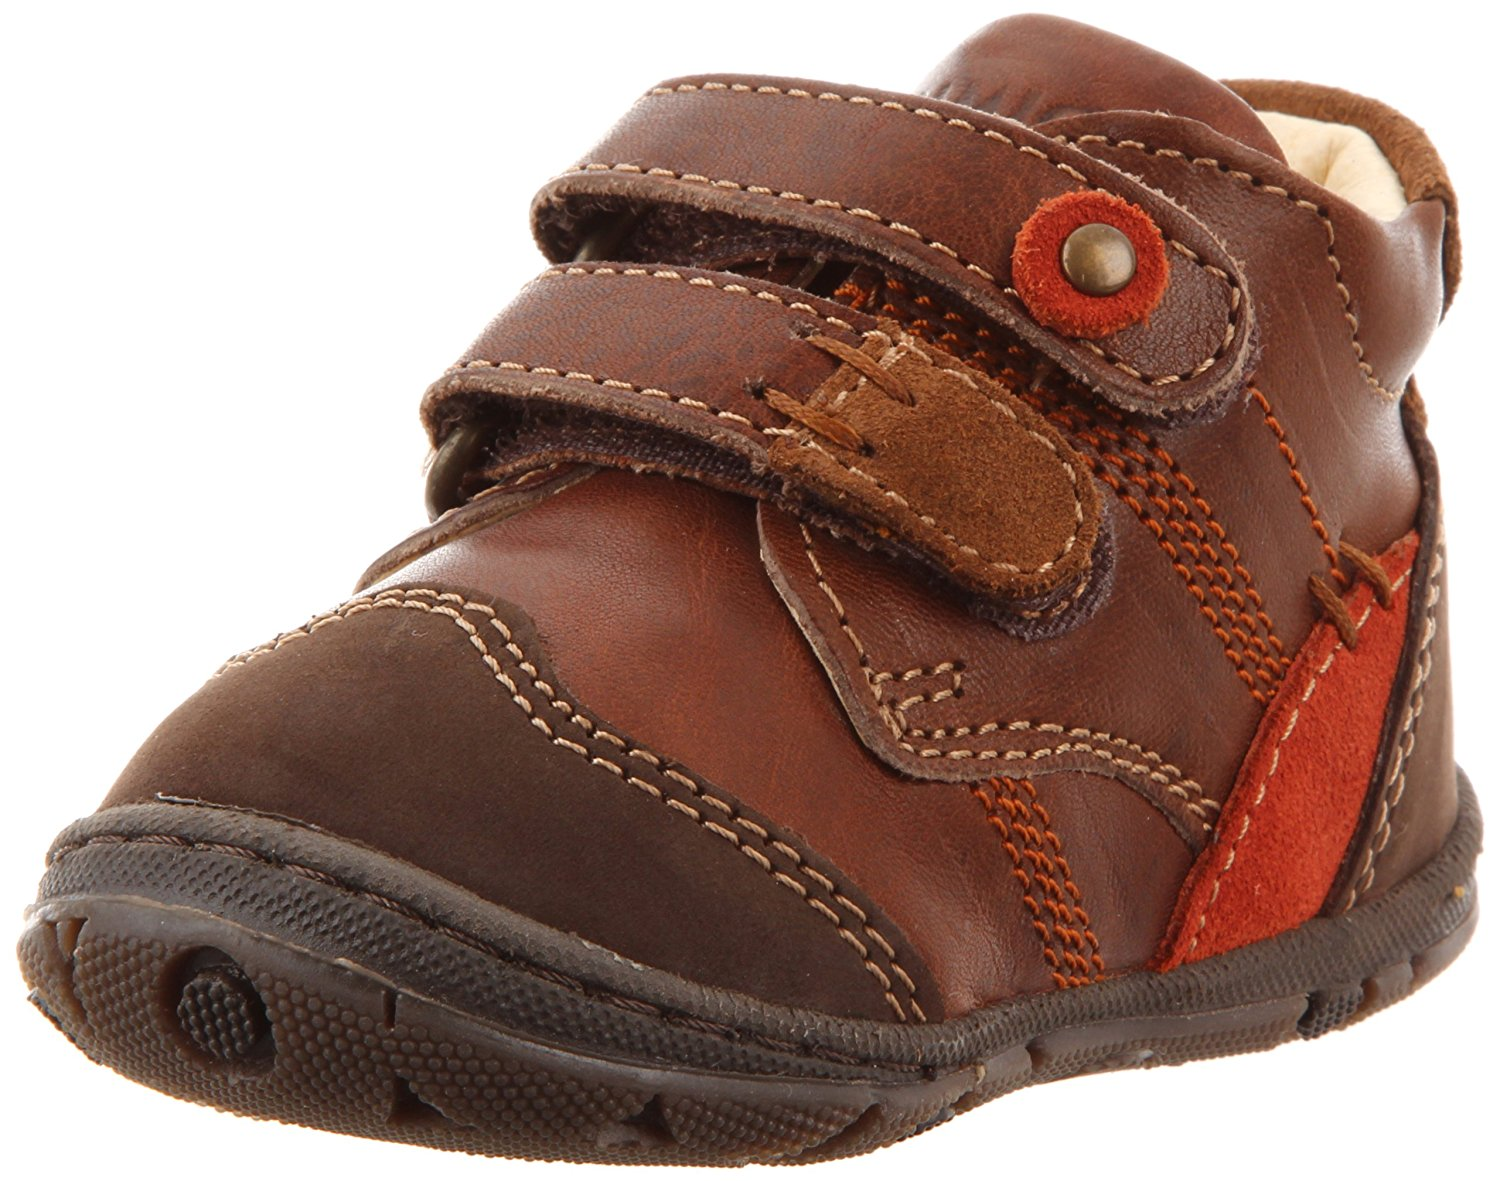 Alonso-E 7040177 First Walker (Infant Toddler),Marrone,18 EU (2.5 M US Toddler) By Primigi by